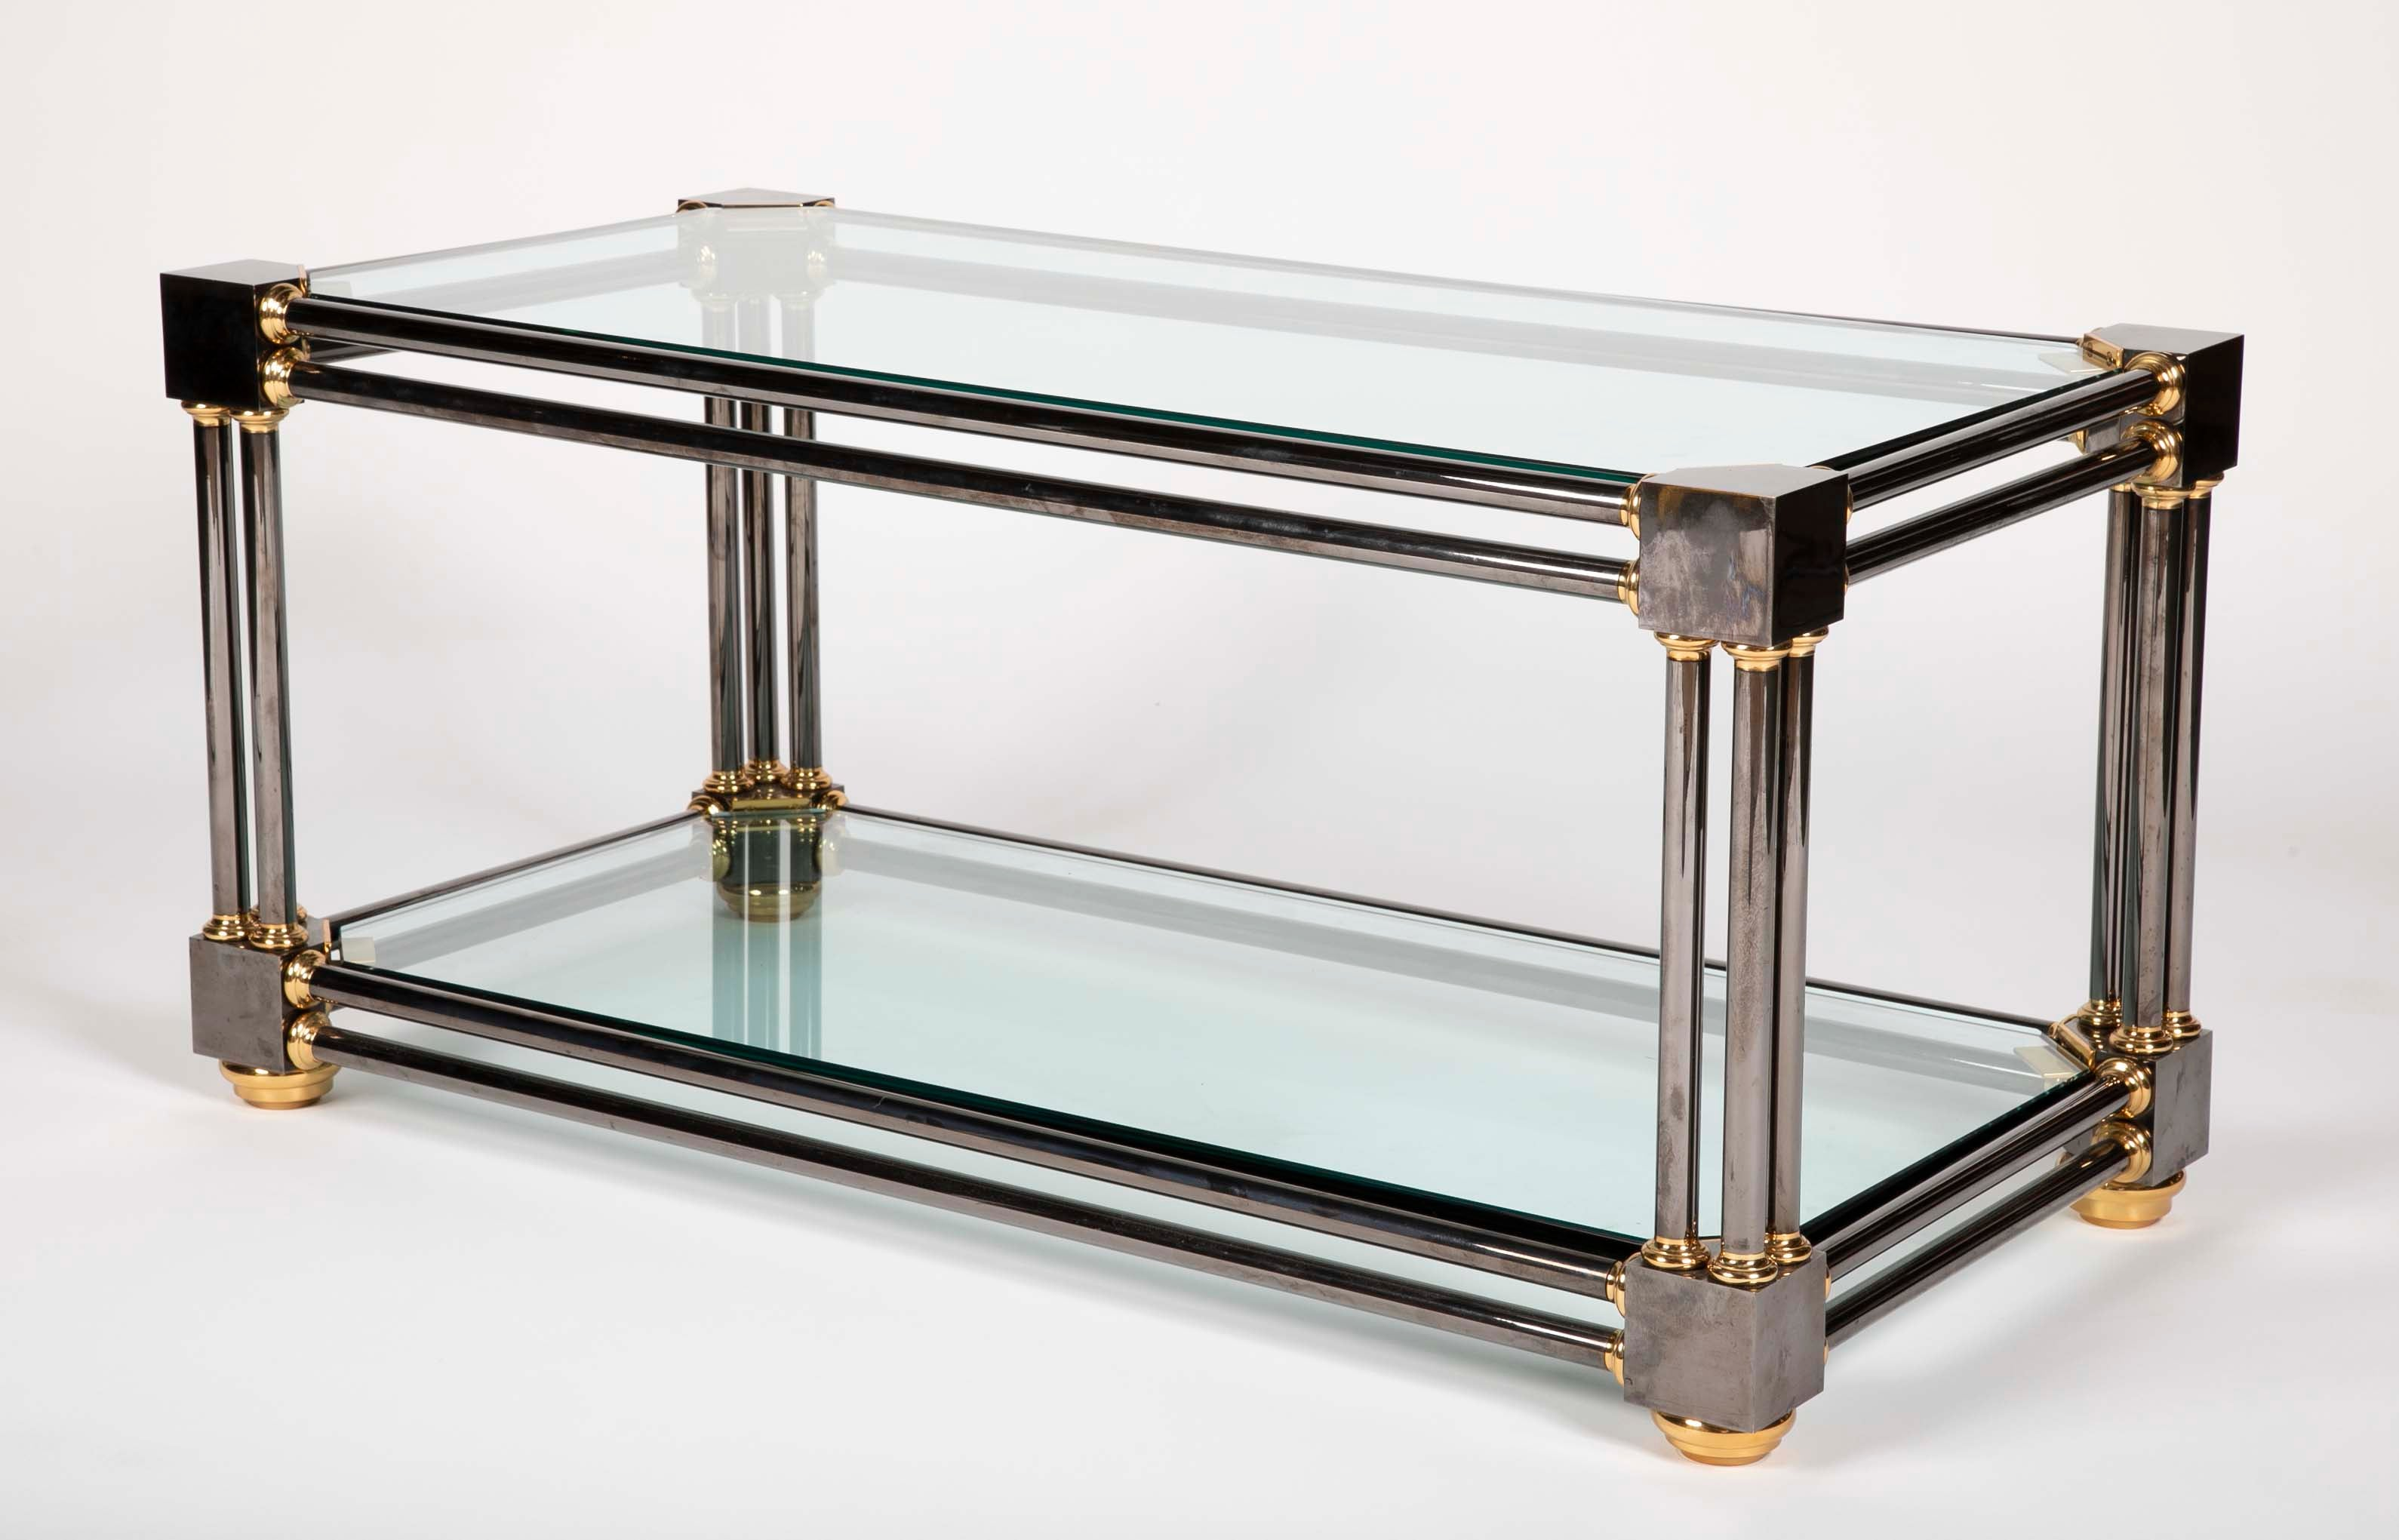 Extraordinary Heavy Custom Brass & Gun Metal Steel Coffee Table